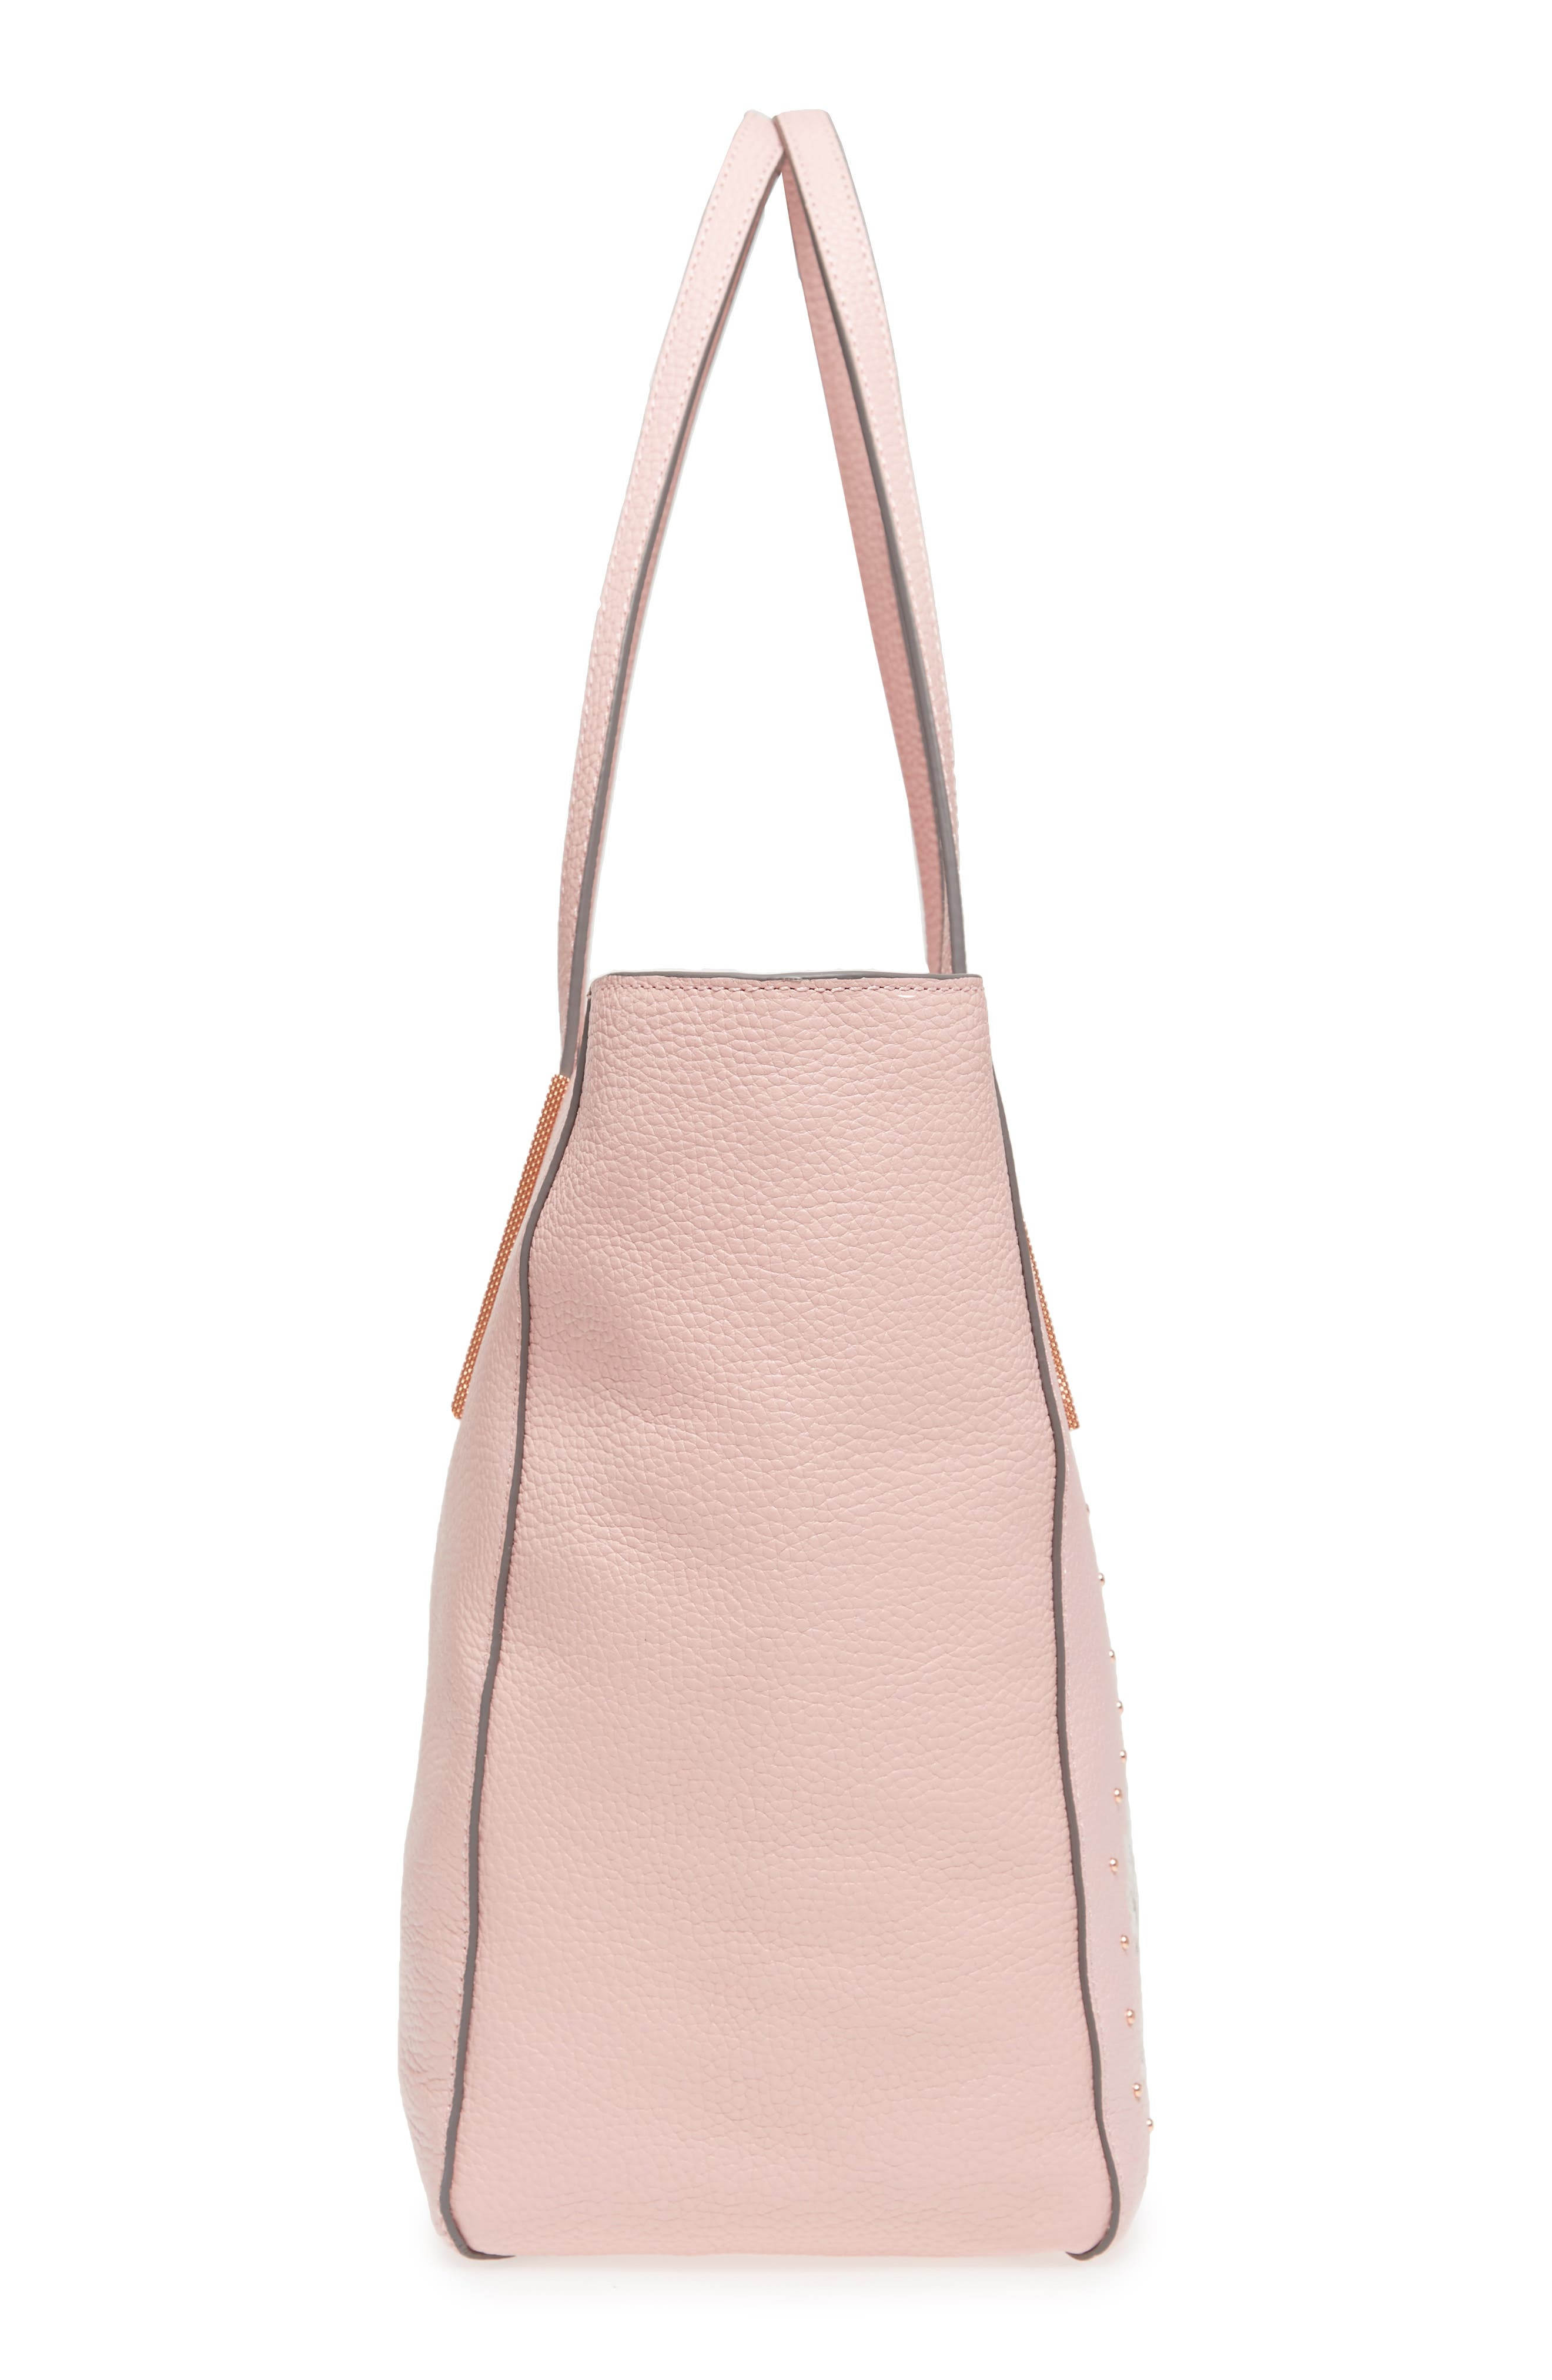 Palace Gardens Large Leather Tote,                             Alternate thumbnail 5, color,                             Dusky Pink